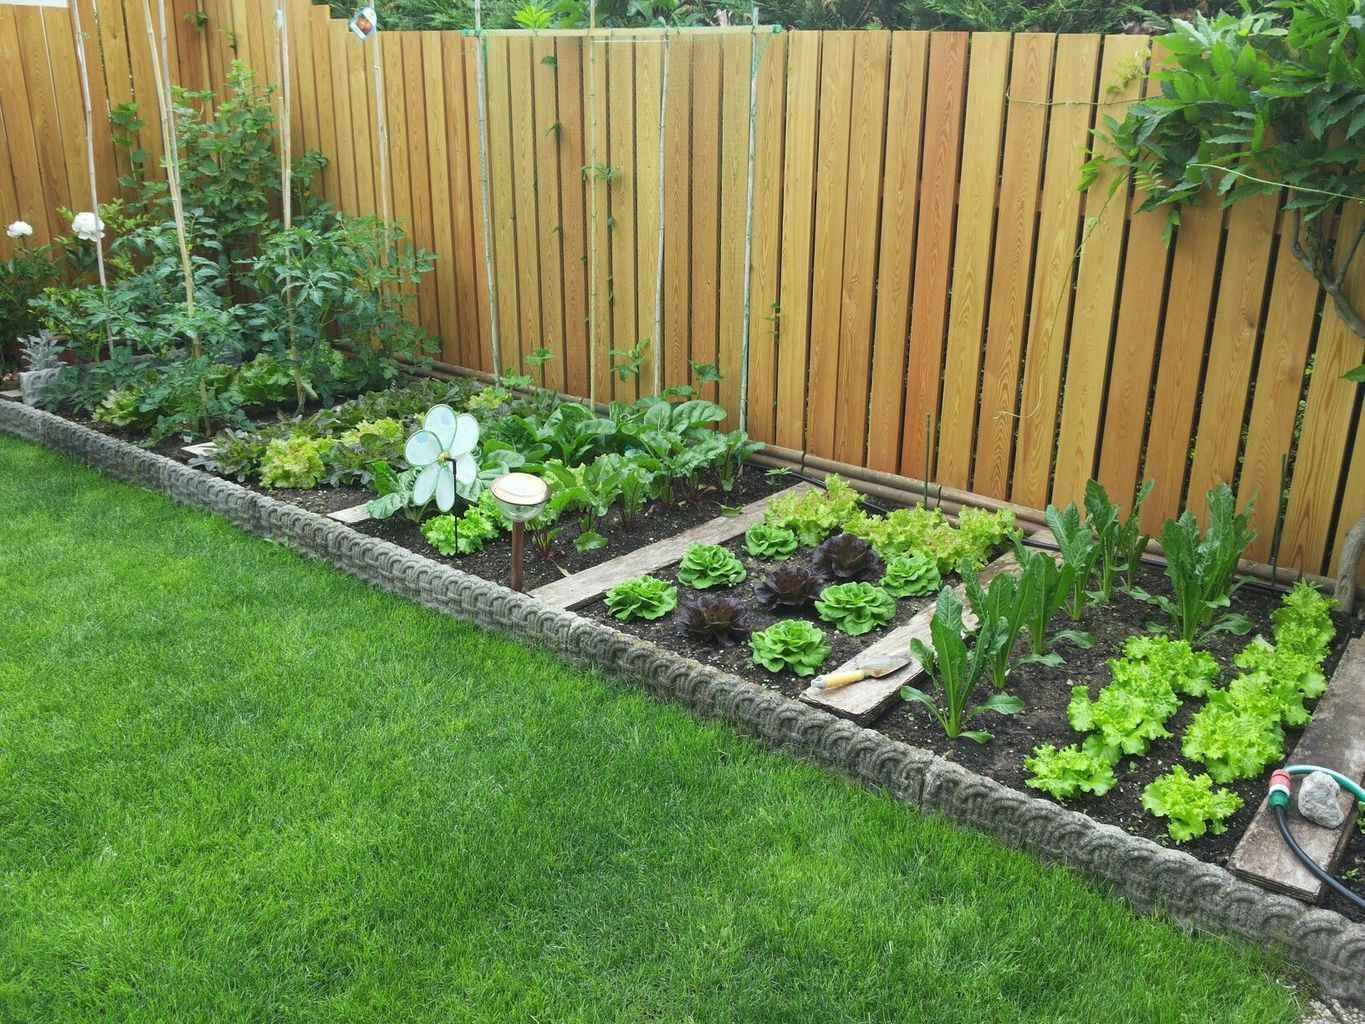 75 Awesome Backyard Vegetable Garden Design Ideas In 2020